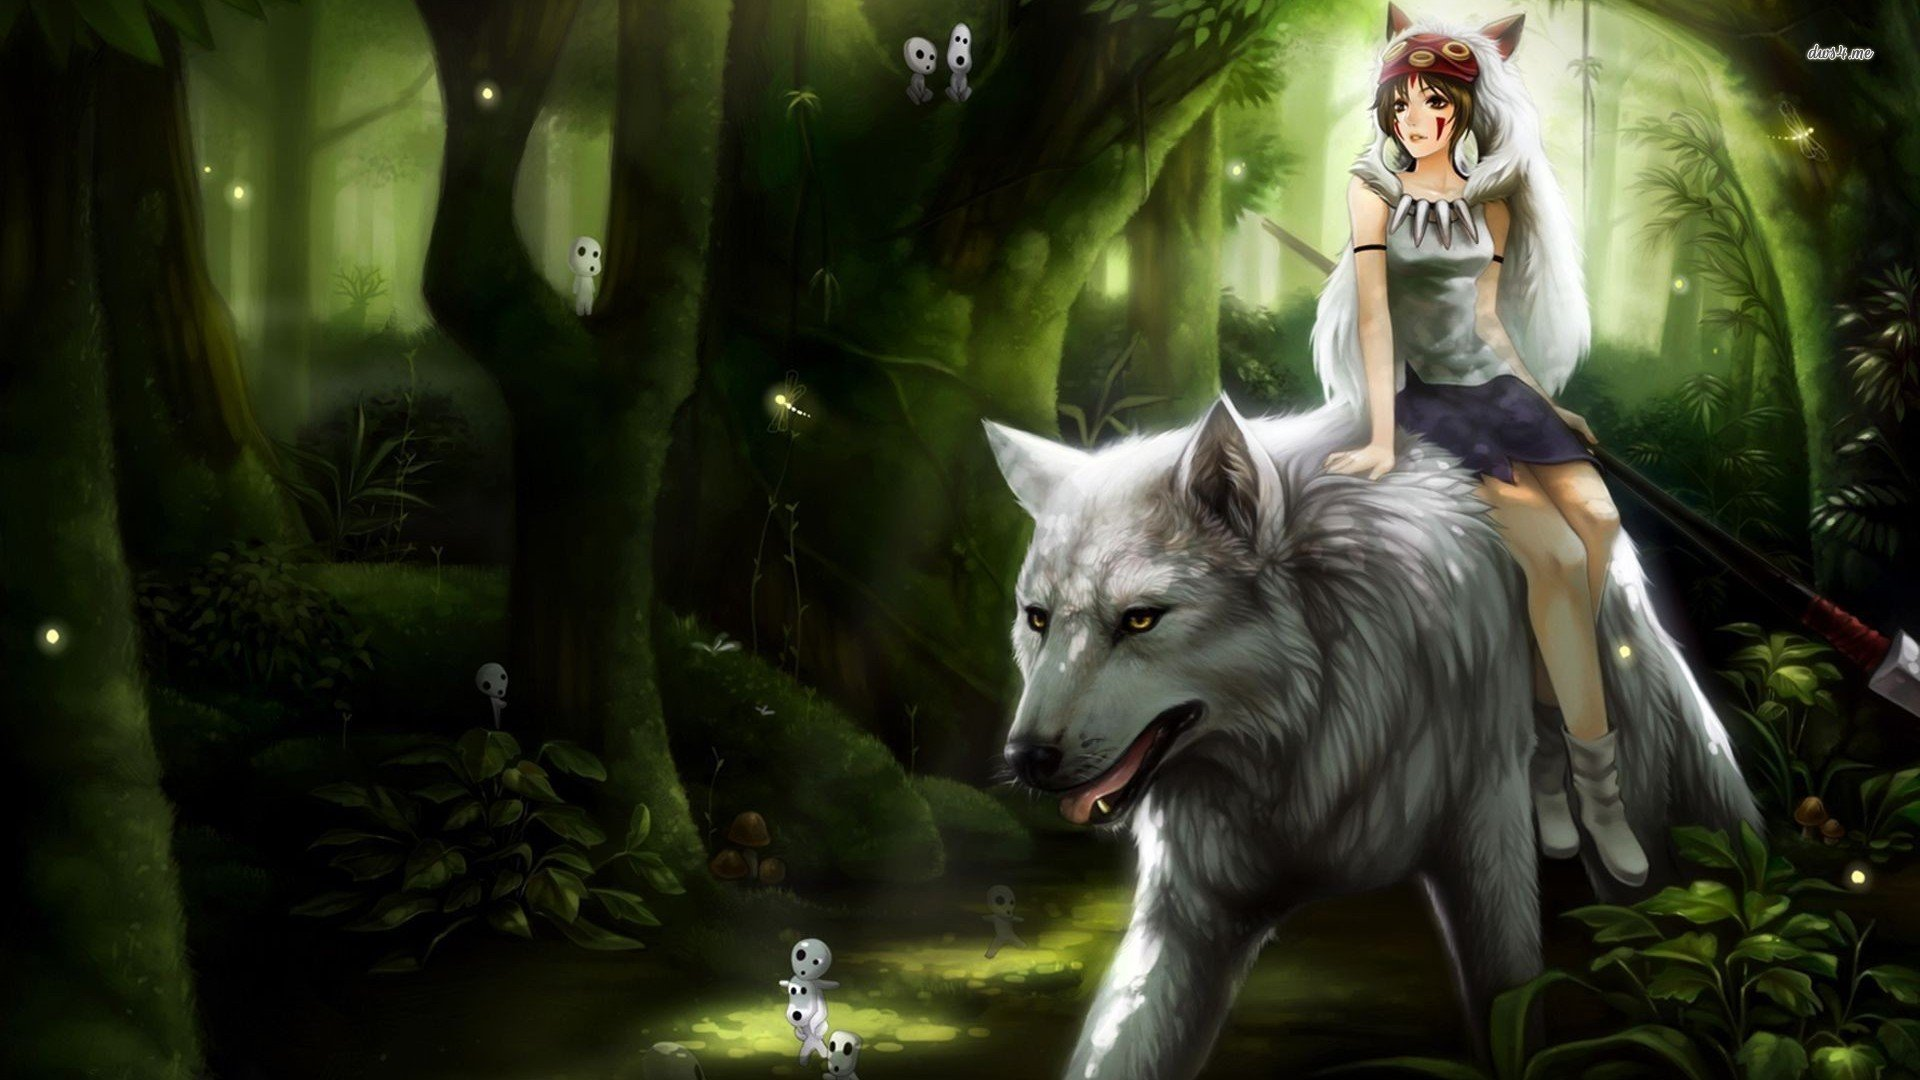 77 Princess Mononoke Wallpaper On Wallpapersafari